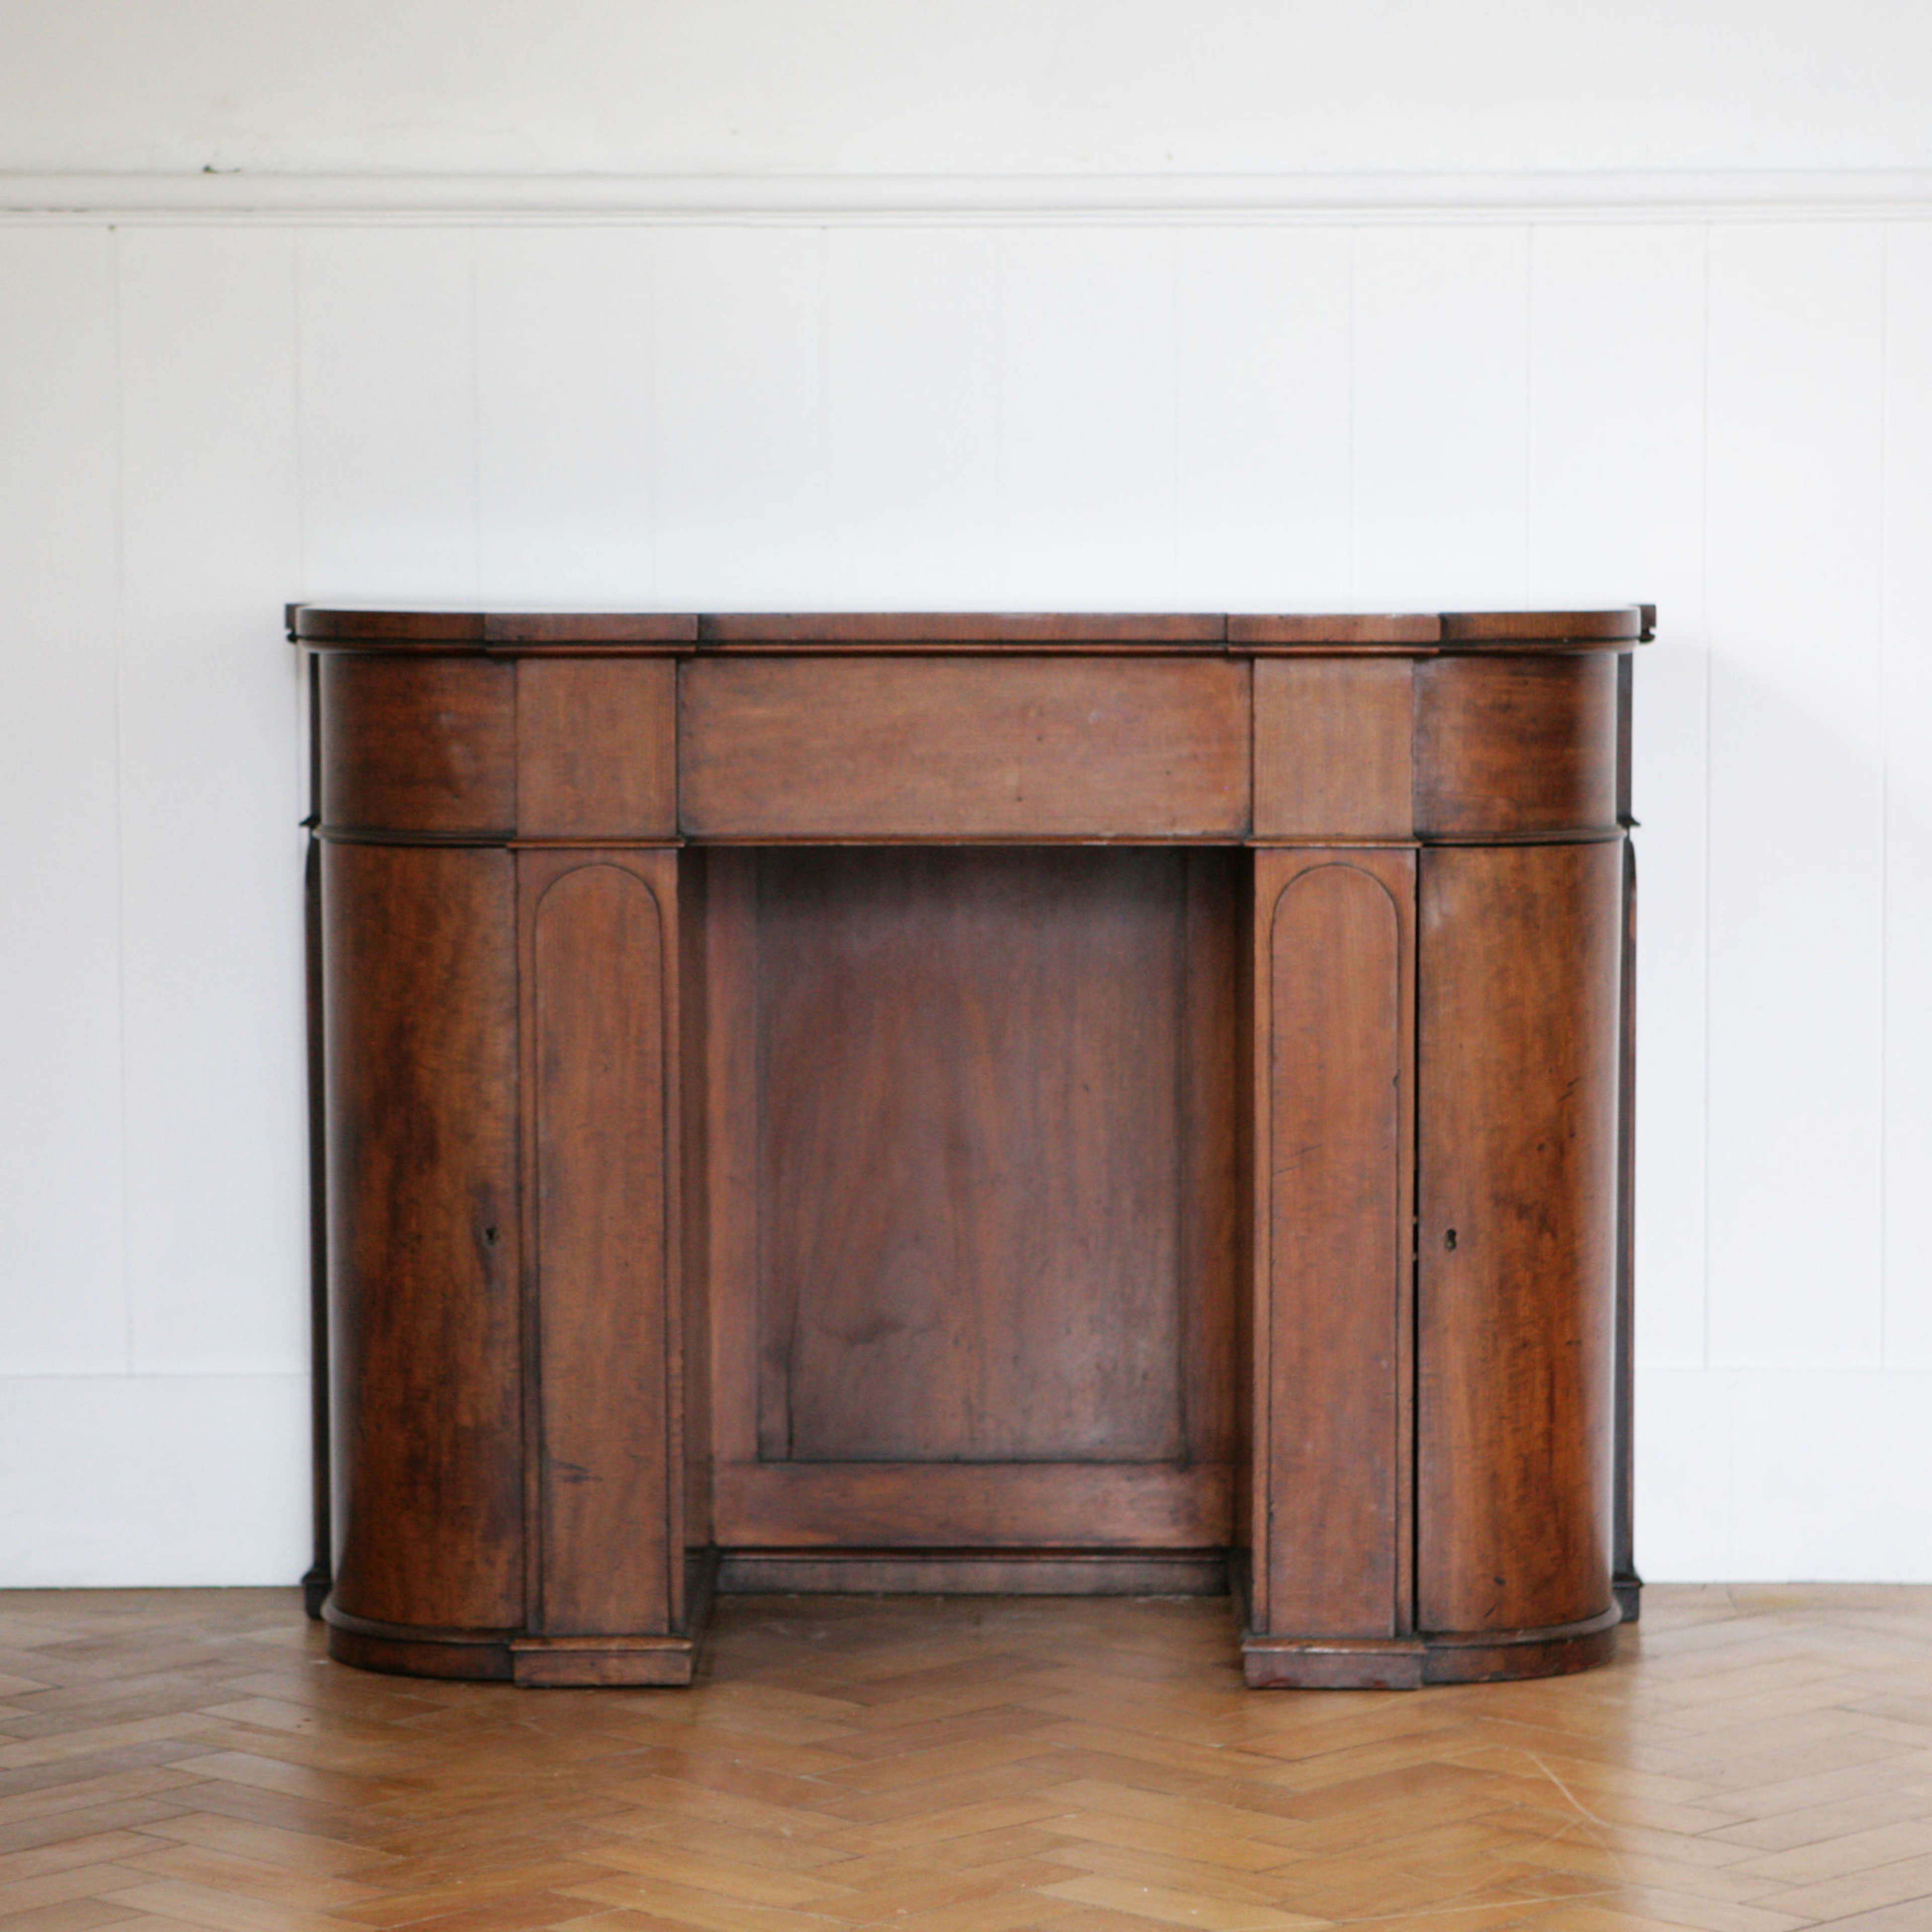 Beautifully designed and proportioned architectural sideboard.